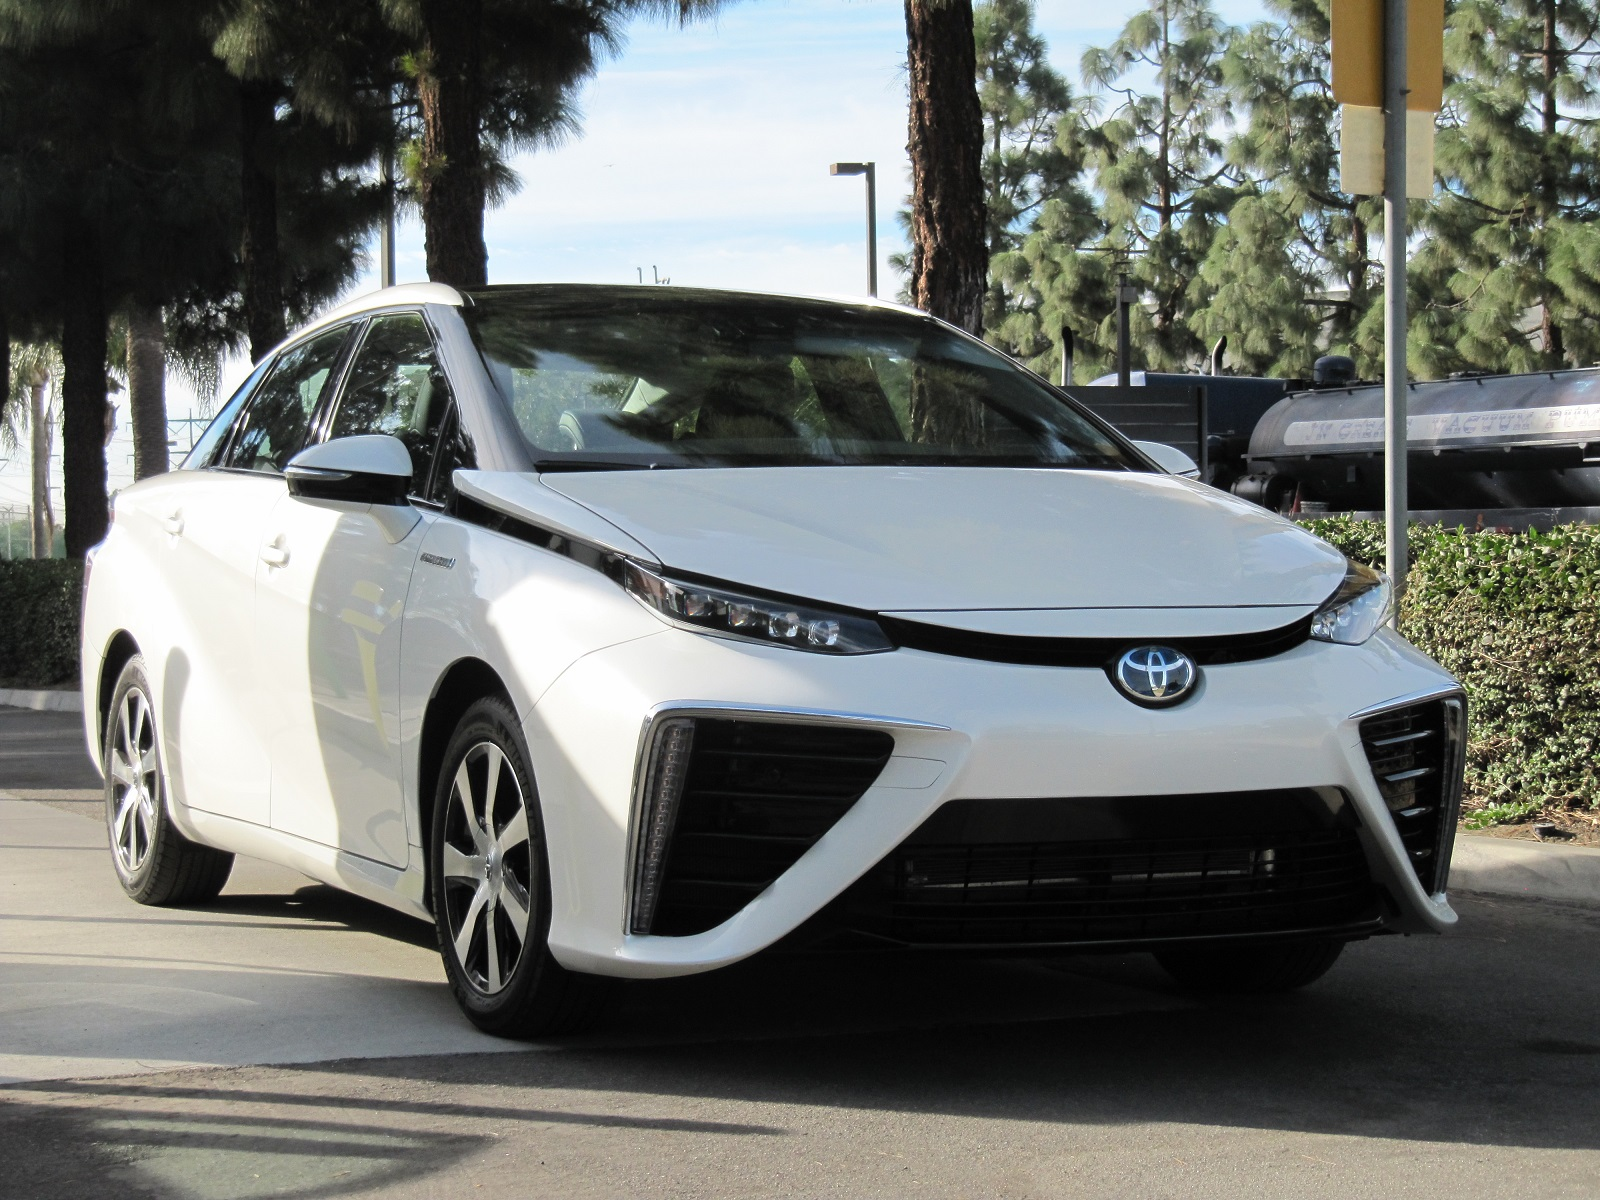 2016 Toyota Mirai Hydrogen Fuel Cell Car First s From Test Drive